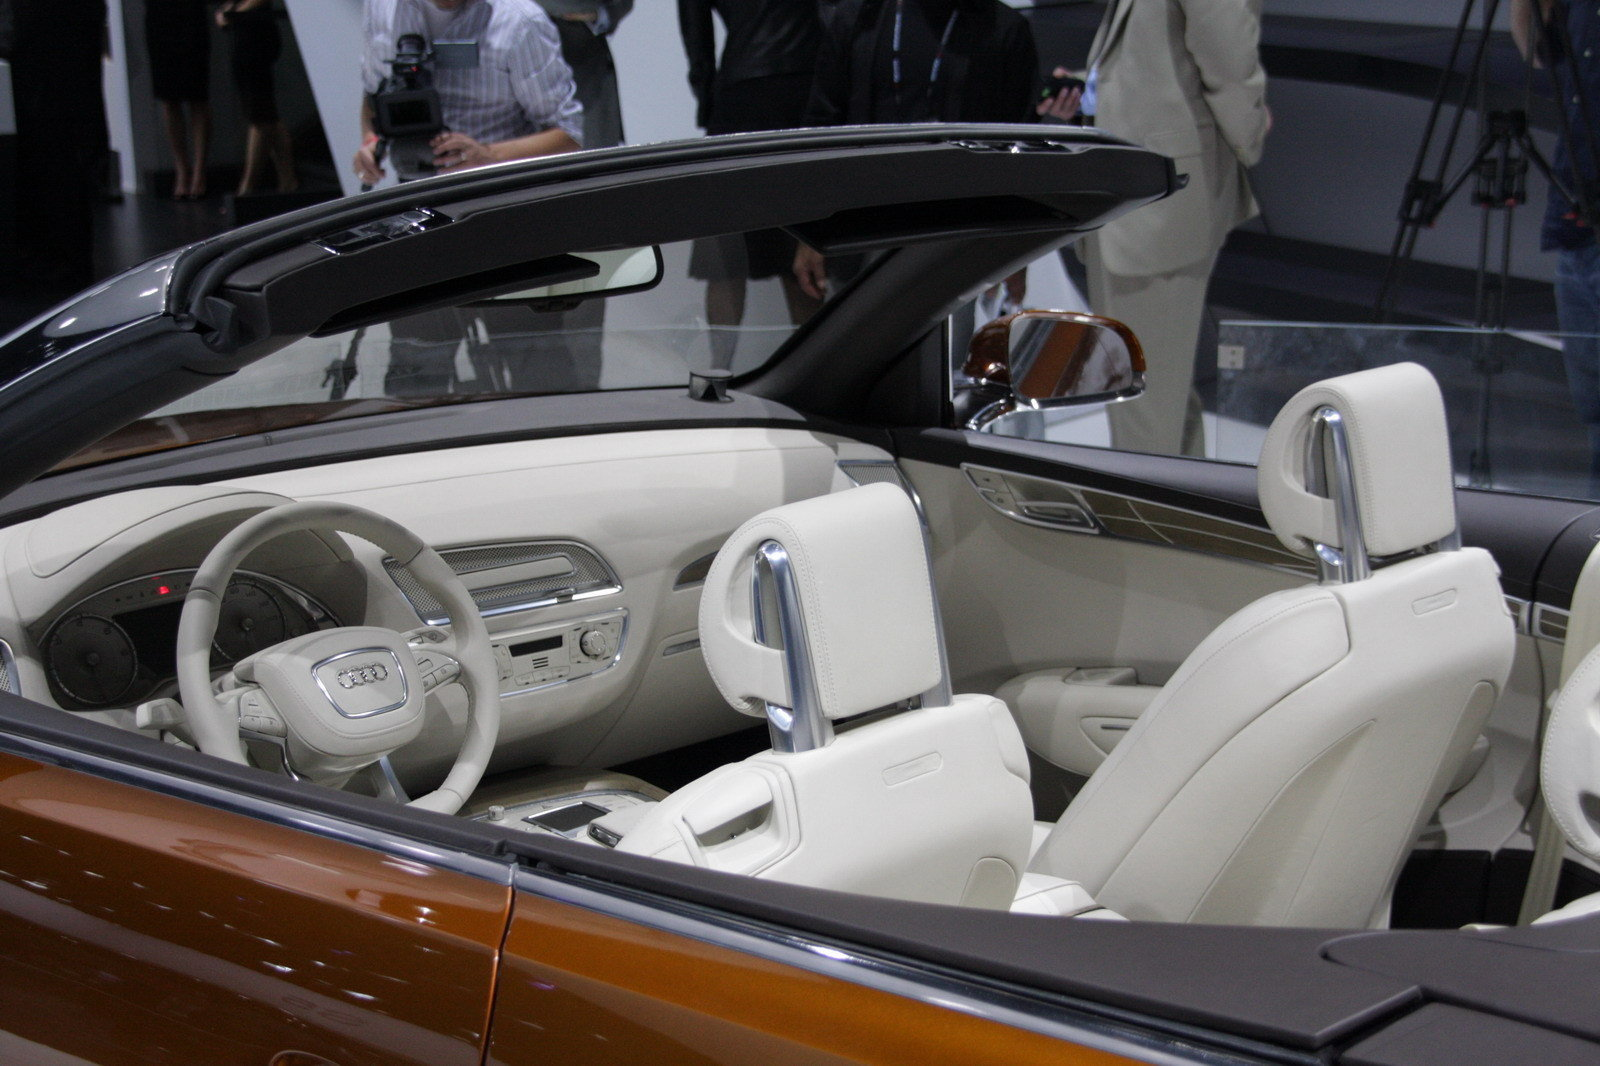 http://pictures.topspeed.com/IMG/crop/200711/audi-cross-cabriolet-27_1600x0w.jpg